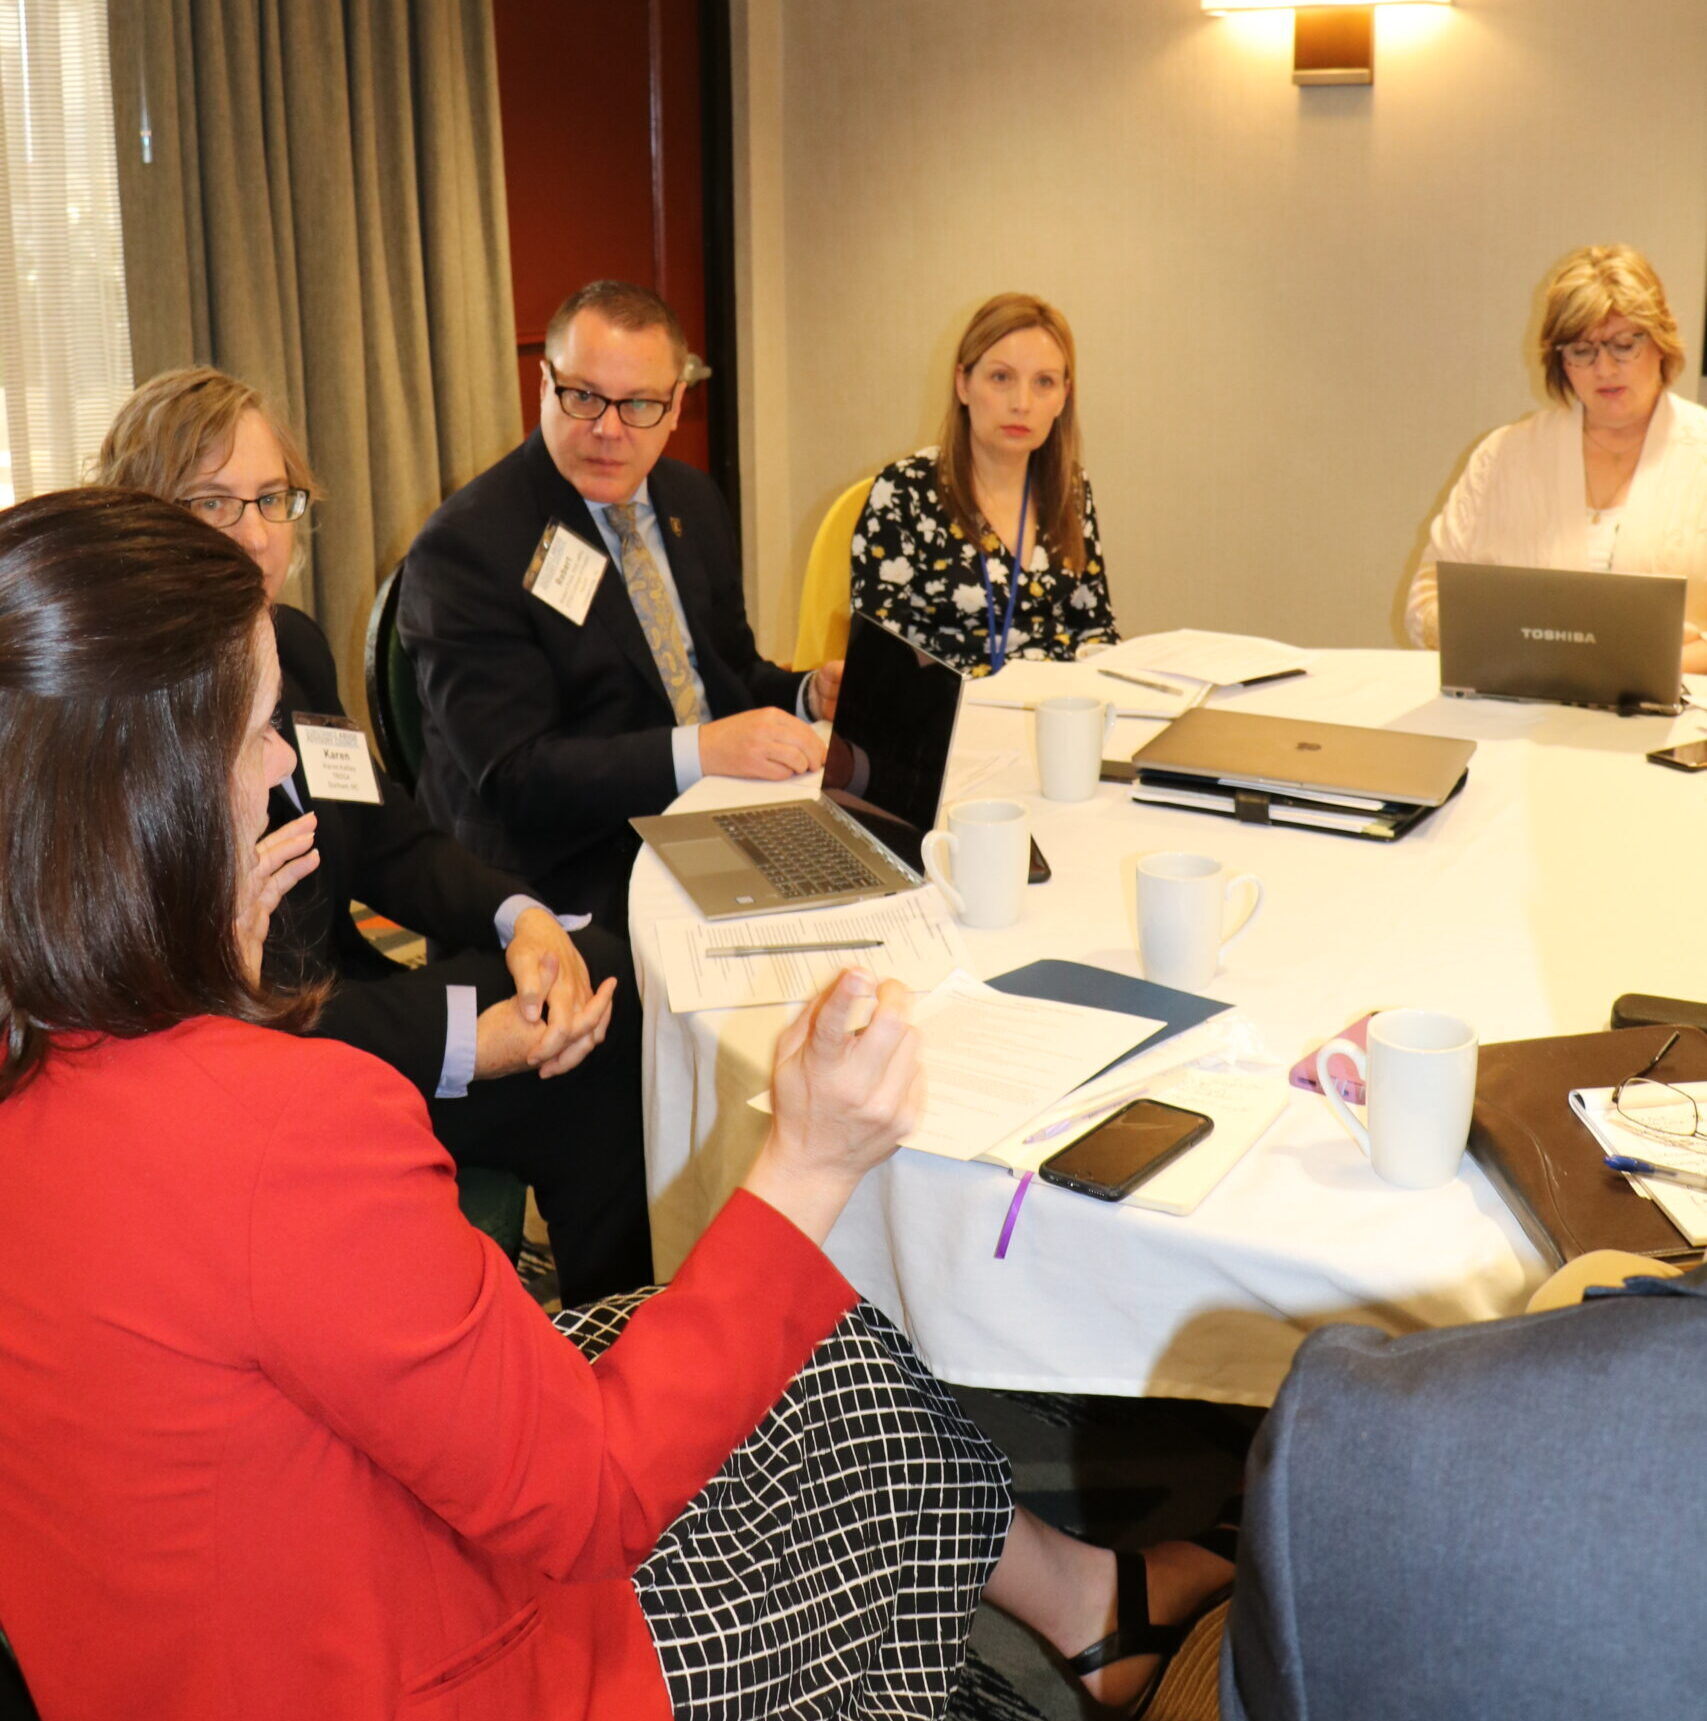 Substance Abuse Advisory Council members meet to discuss recommendations